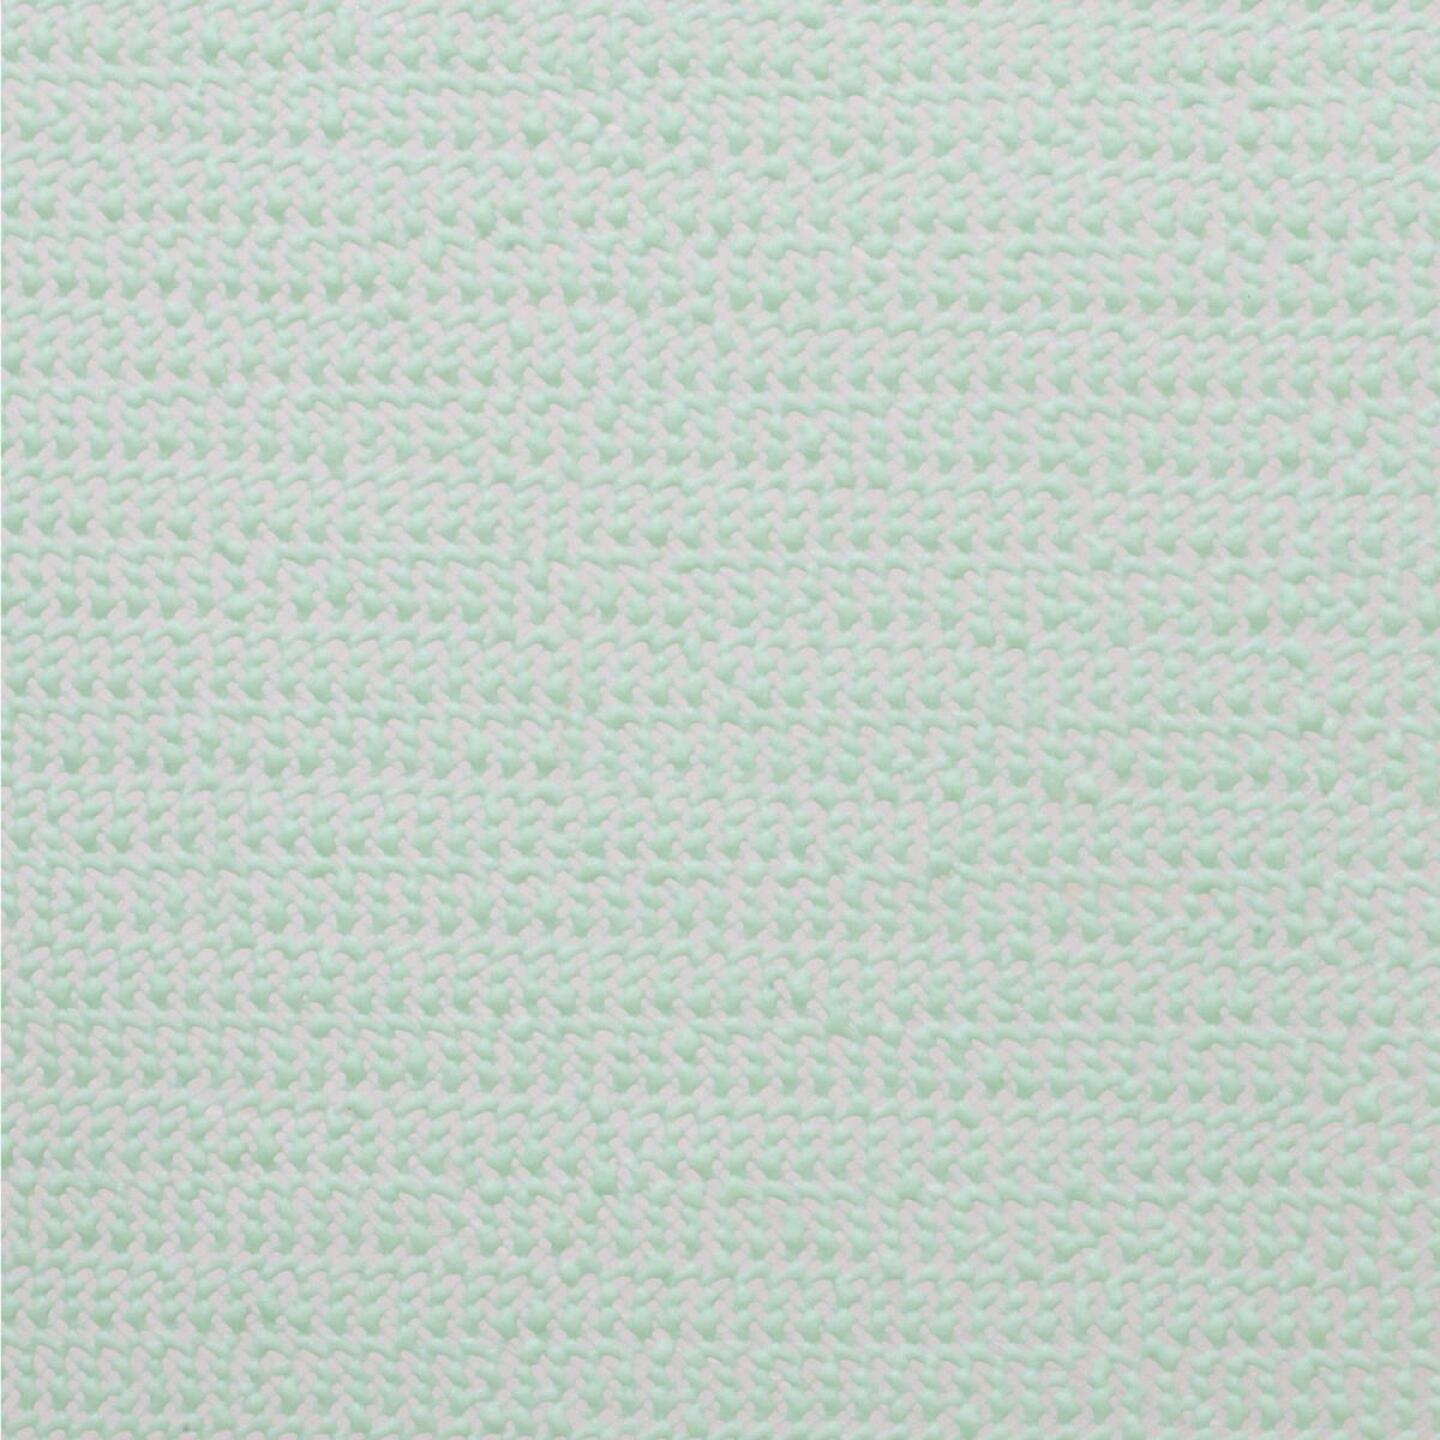 Con-Tact 12 In. x 5 Ft. Sage Beaded Grip Non-Adhesive Shelf Liner Image 3